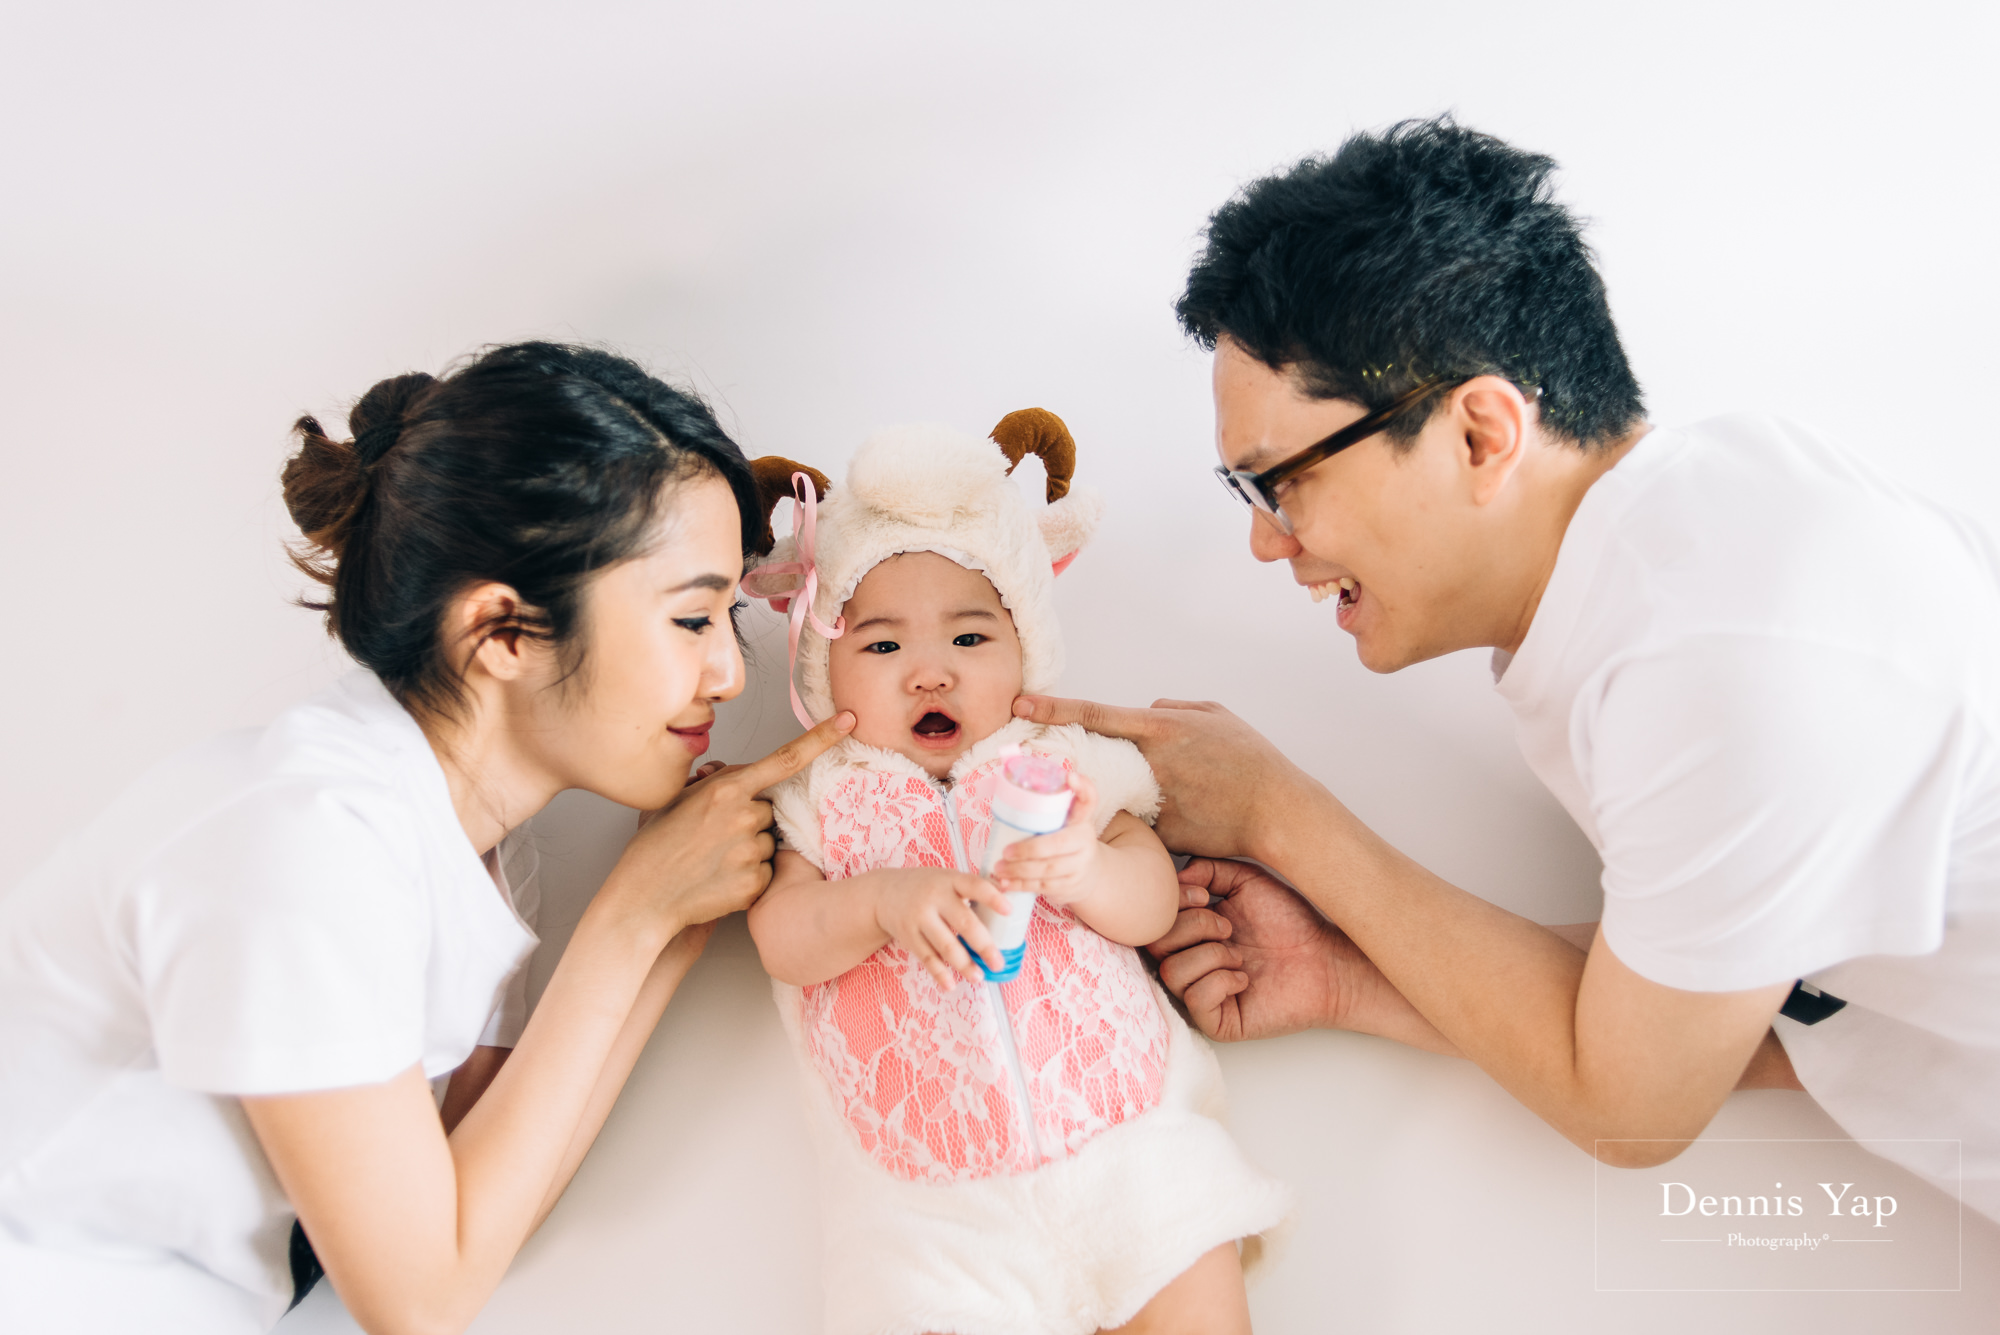 isaac evon family baby portrait funny style dennis yap photography-17.jpg